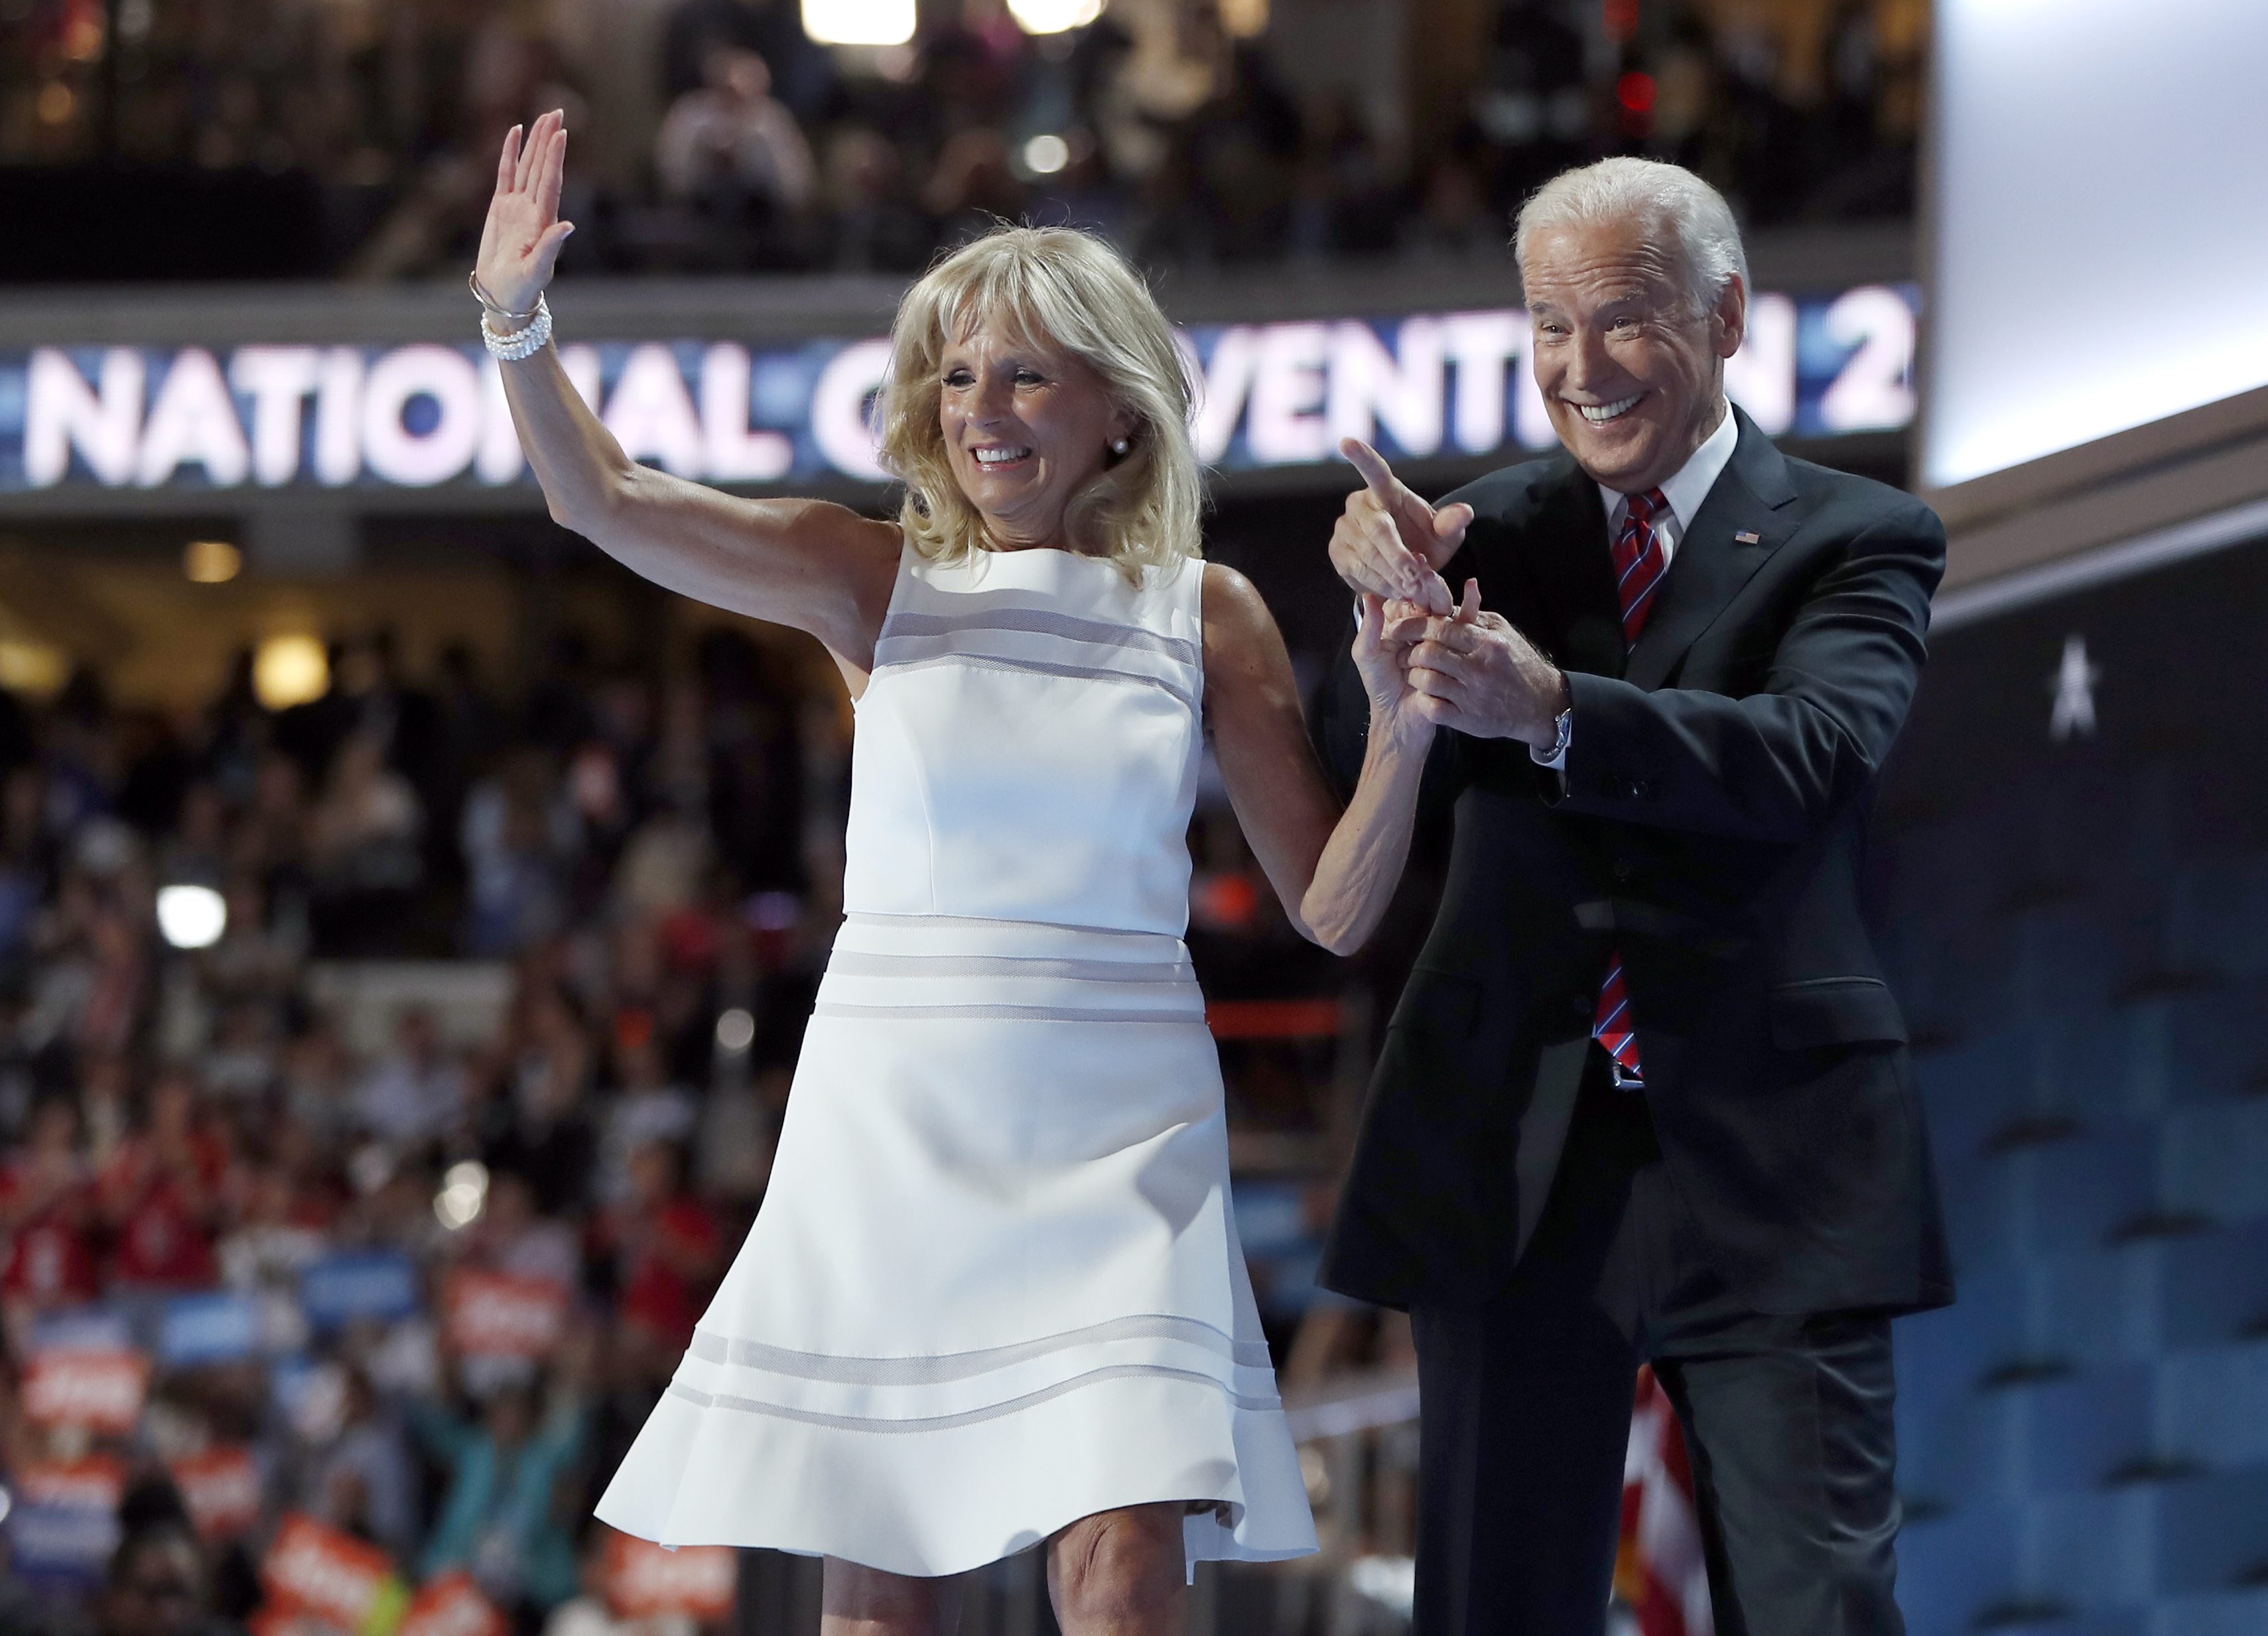 Dr. Jill Biden and Vice President Joe Biden wave after speaking to delegates during the third day session of the Democratic National Convention in Philadelphia, Wednesday, July 27, 2016. (AP Photo/Carolyn Kaster)